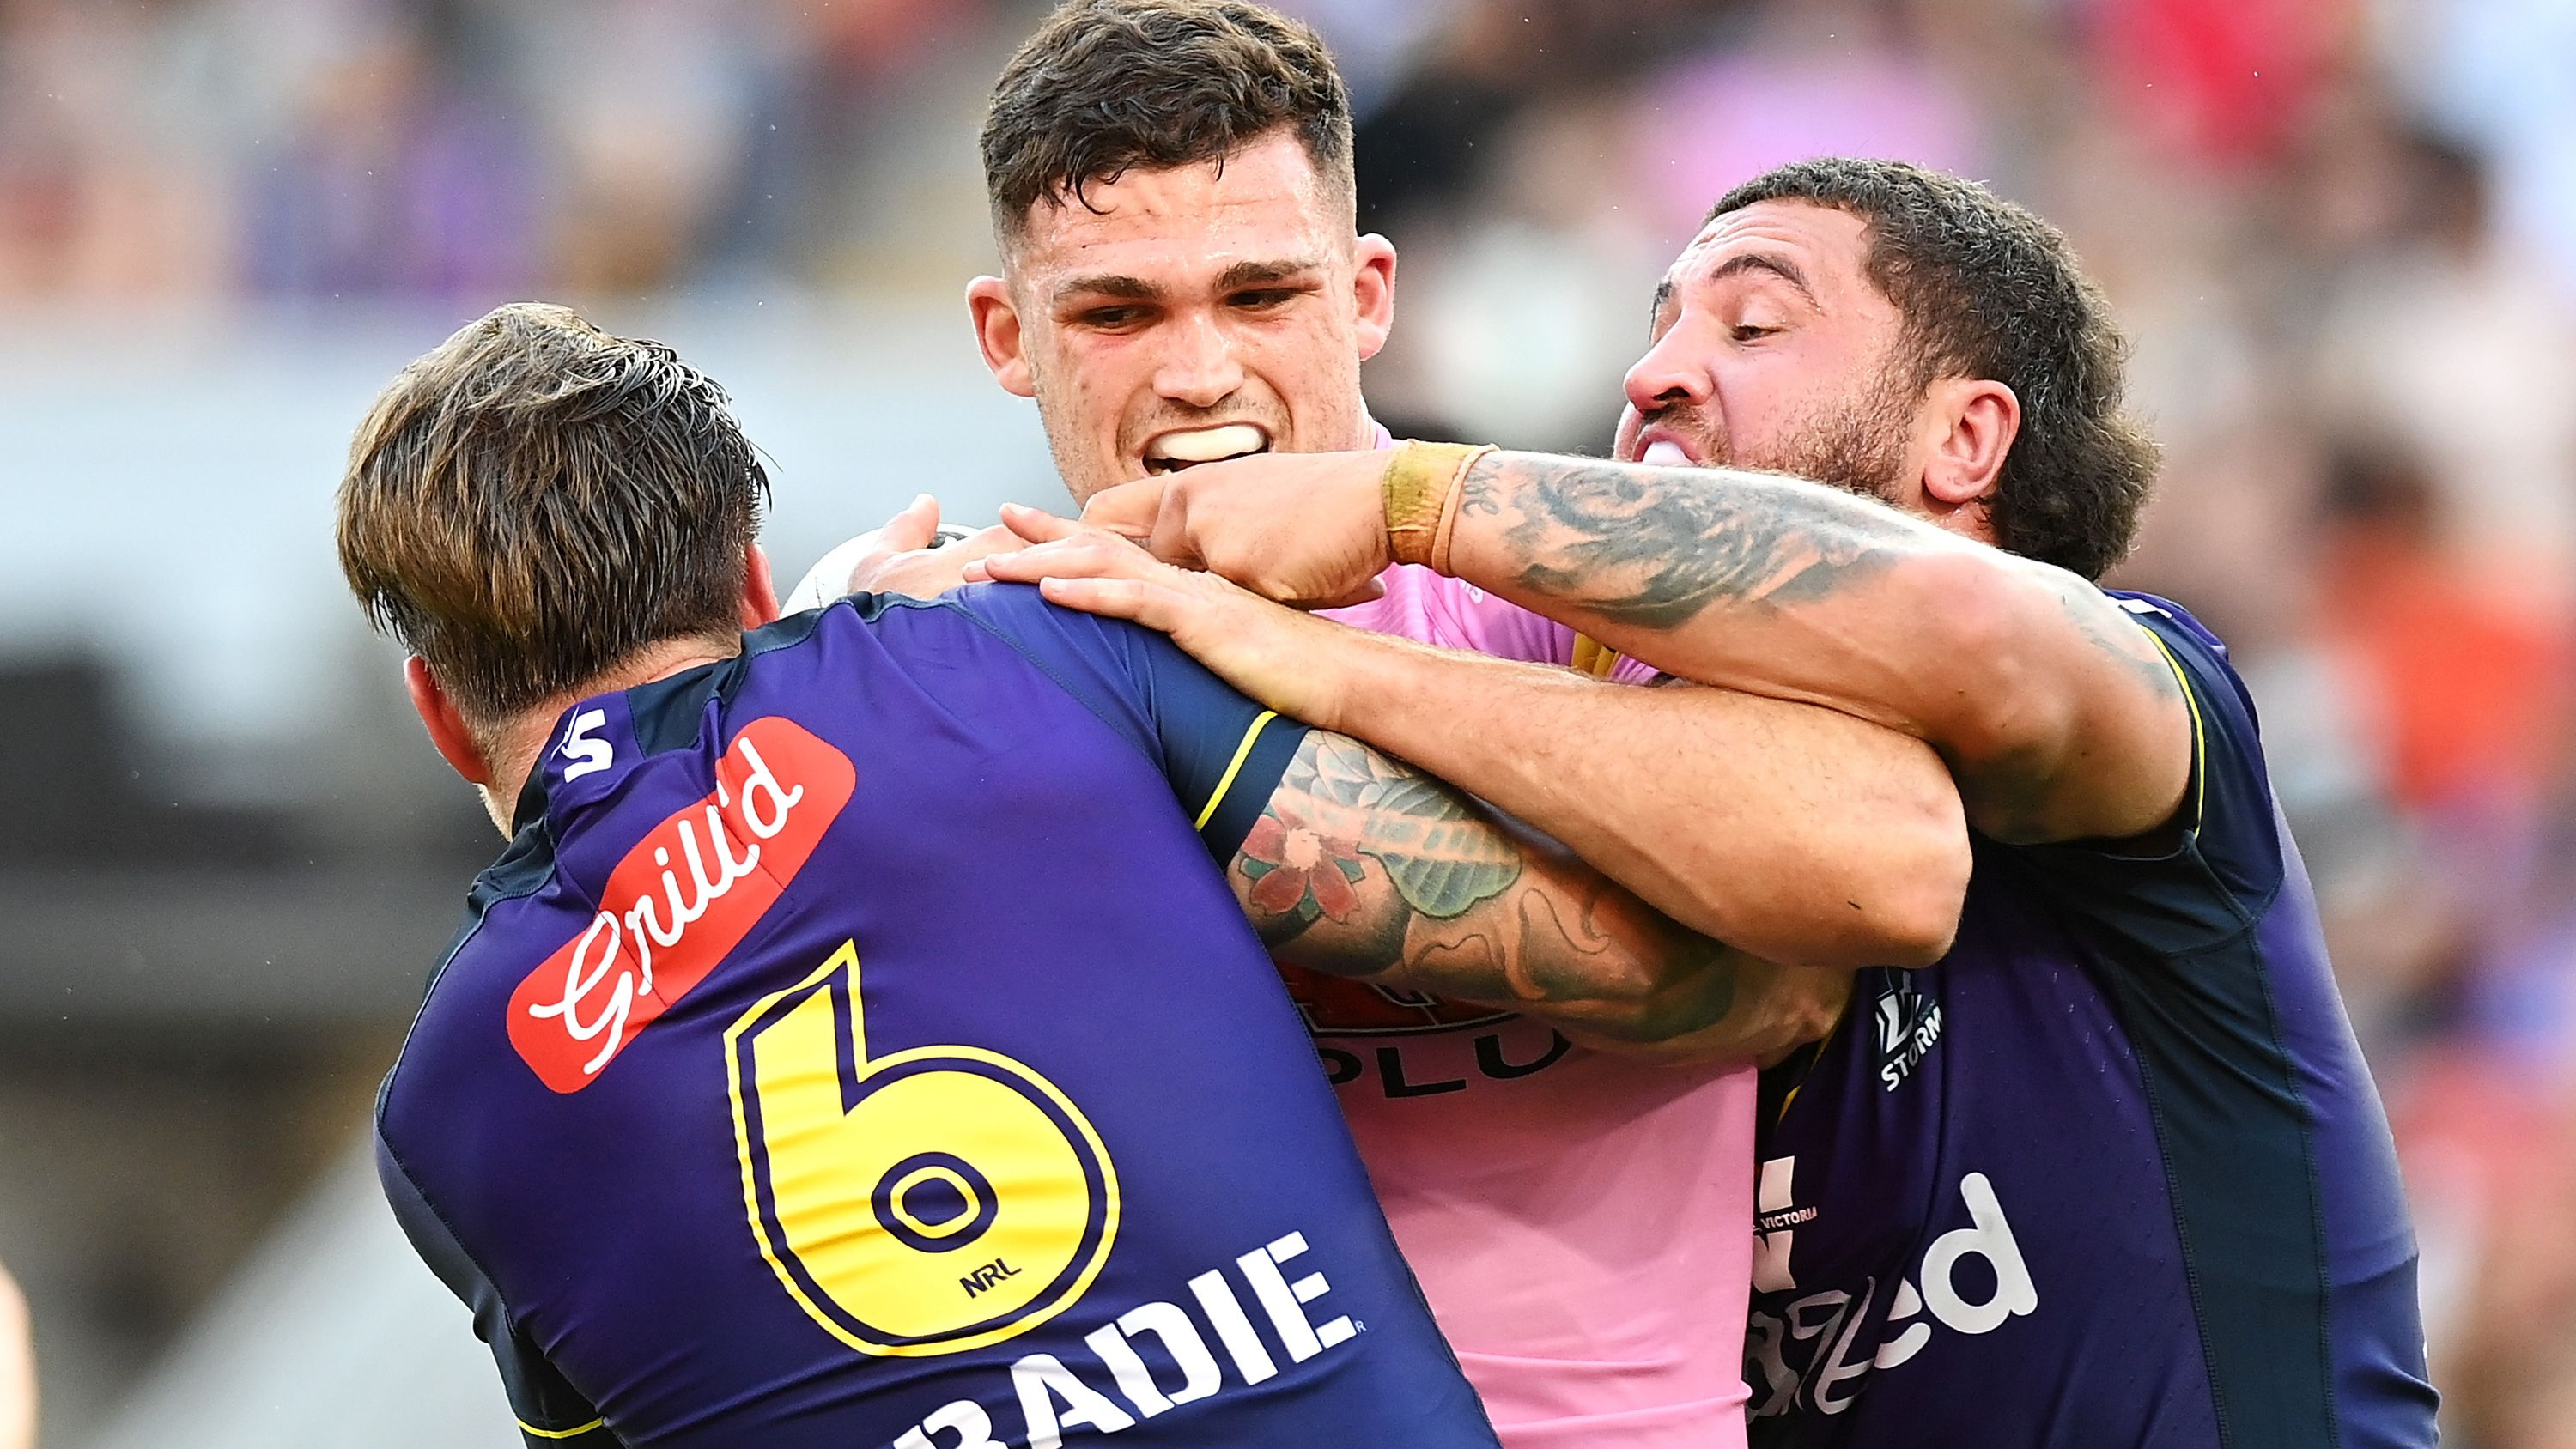 Penrith star Nathan Cleary free to play NRL grand final after escaping suspension